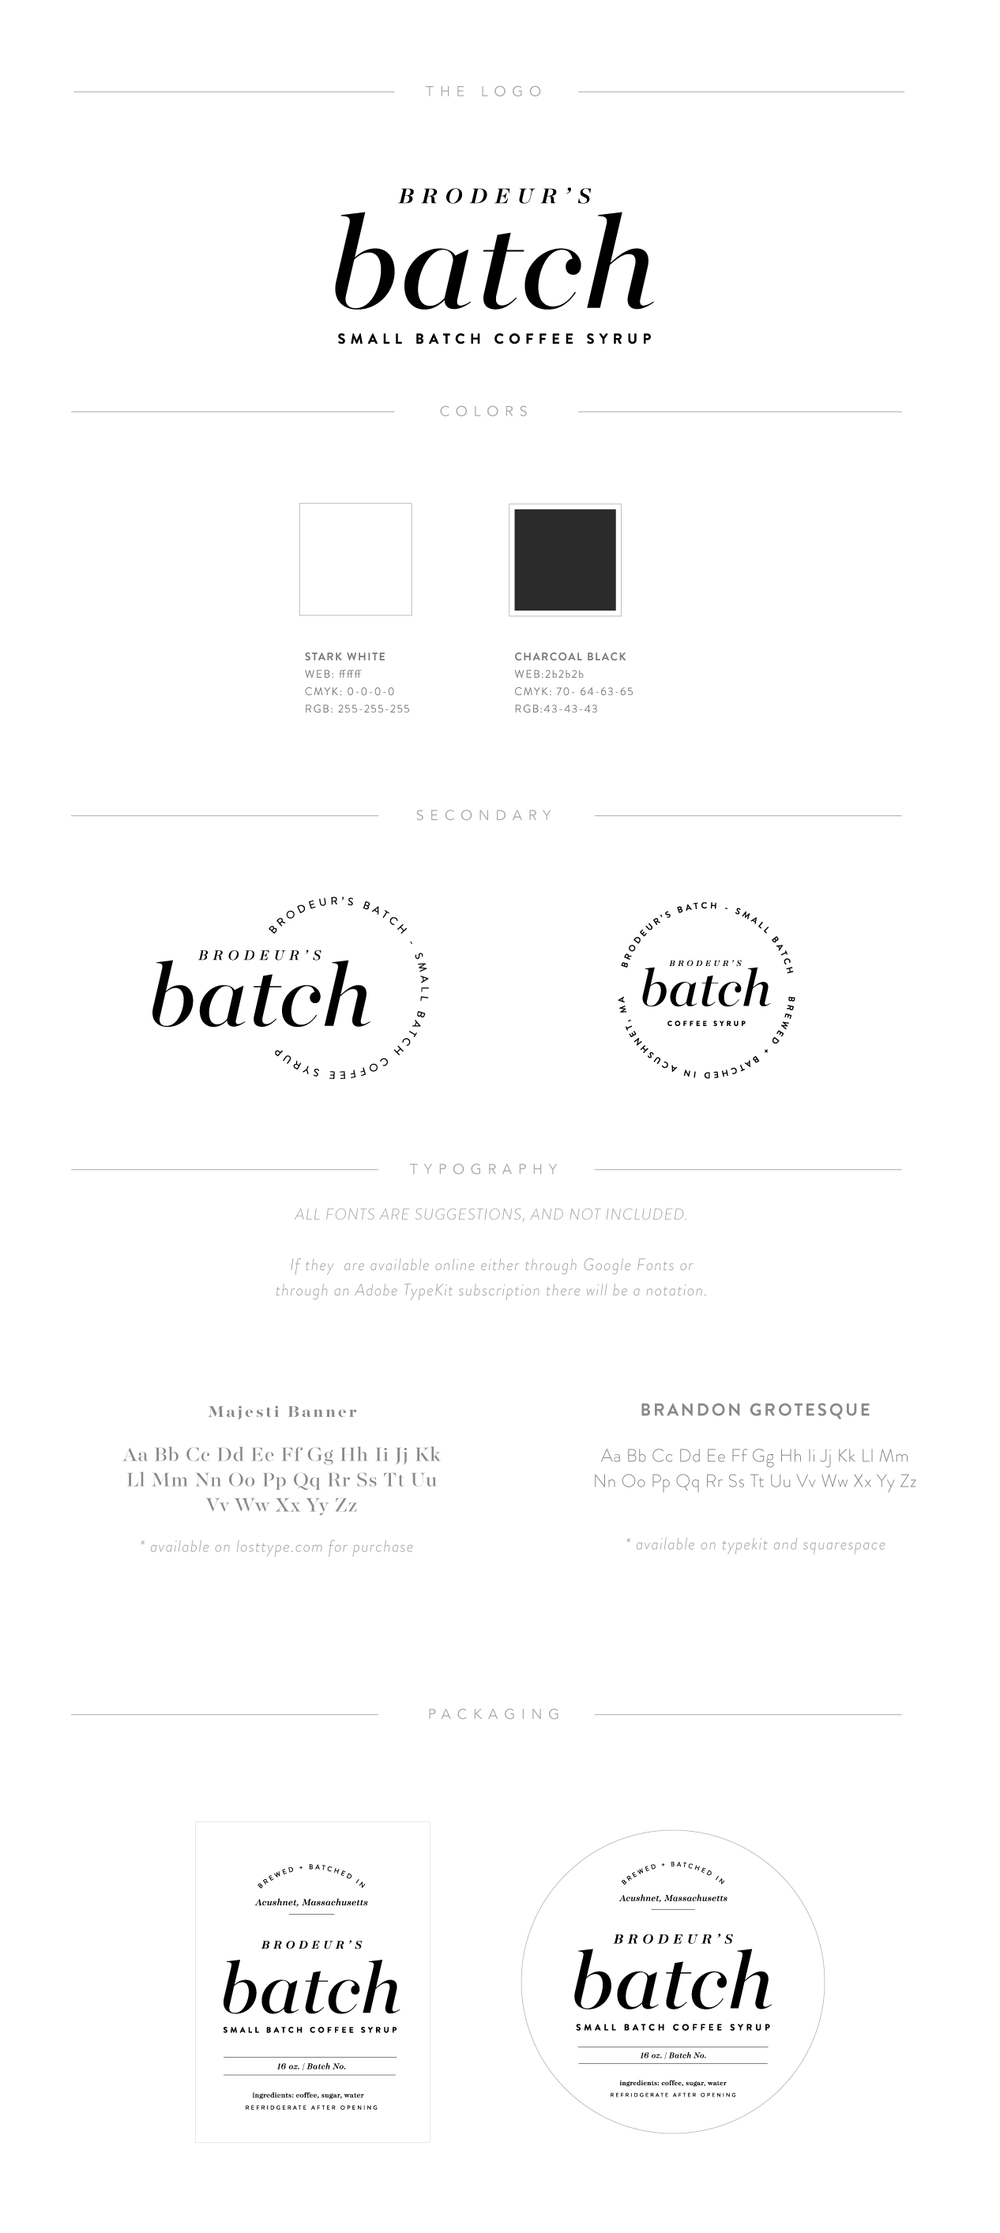 Logo Design + Packaging Design | Brodeurs Batch Brand Board